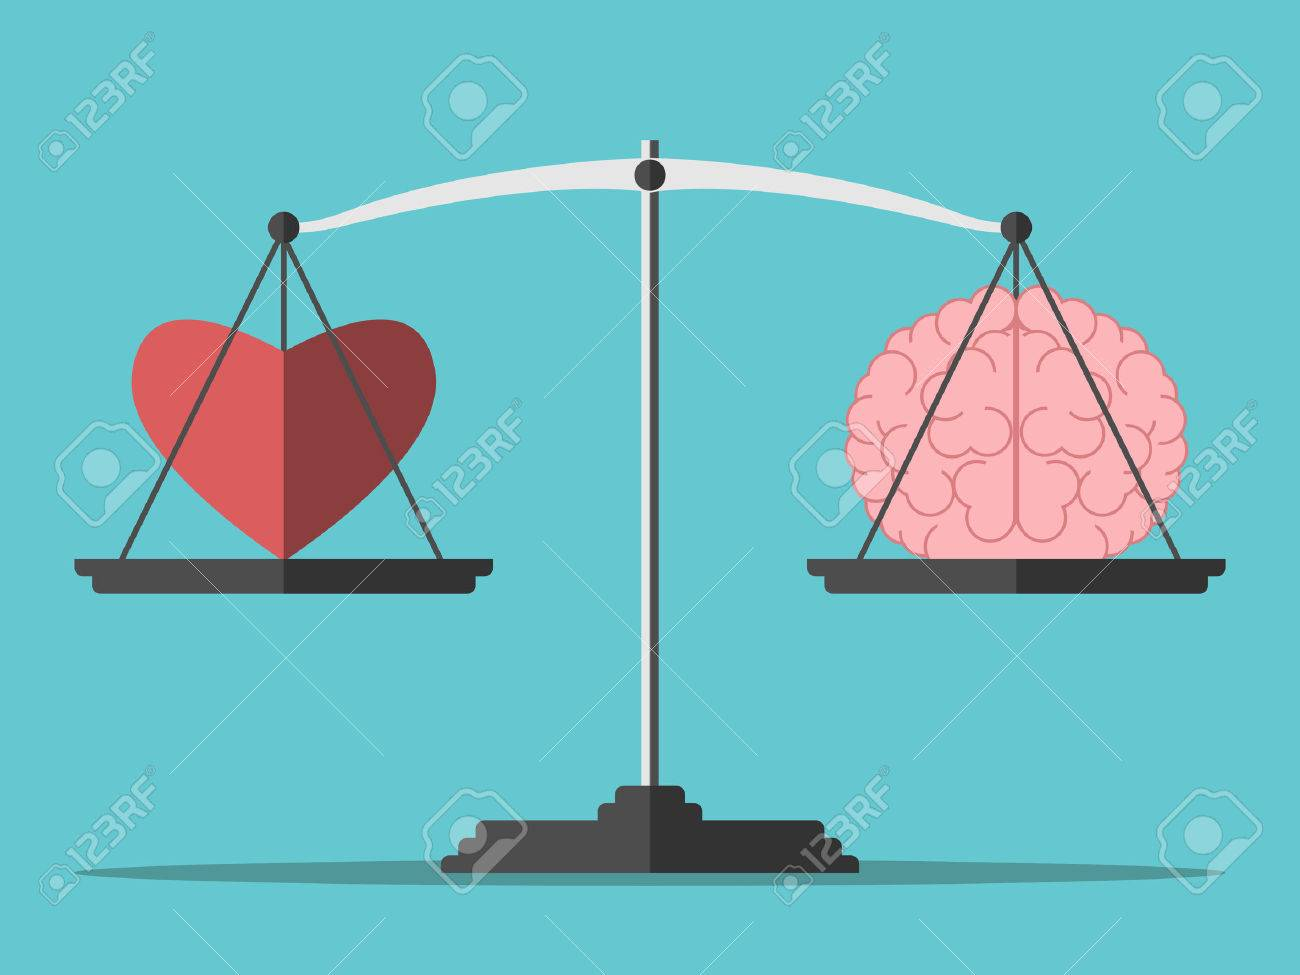 Heart and brain on scales. - 51636535